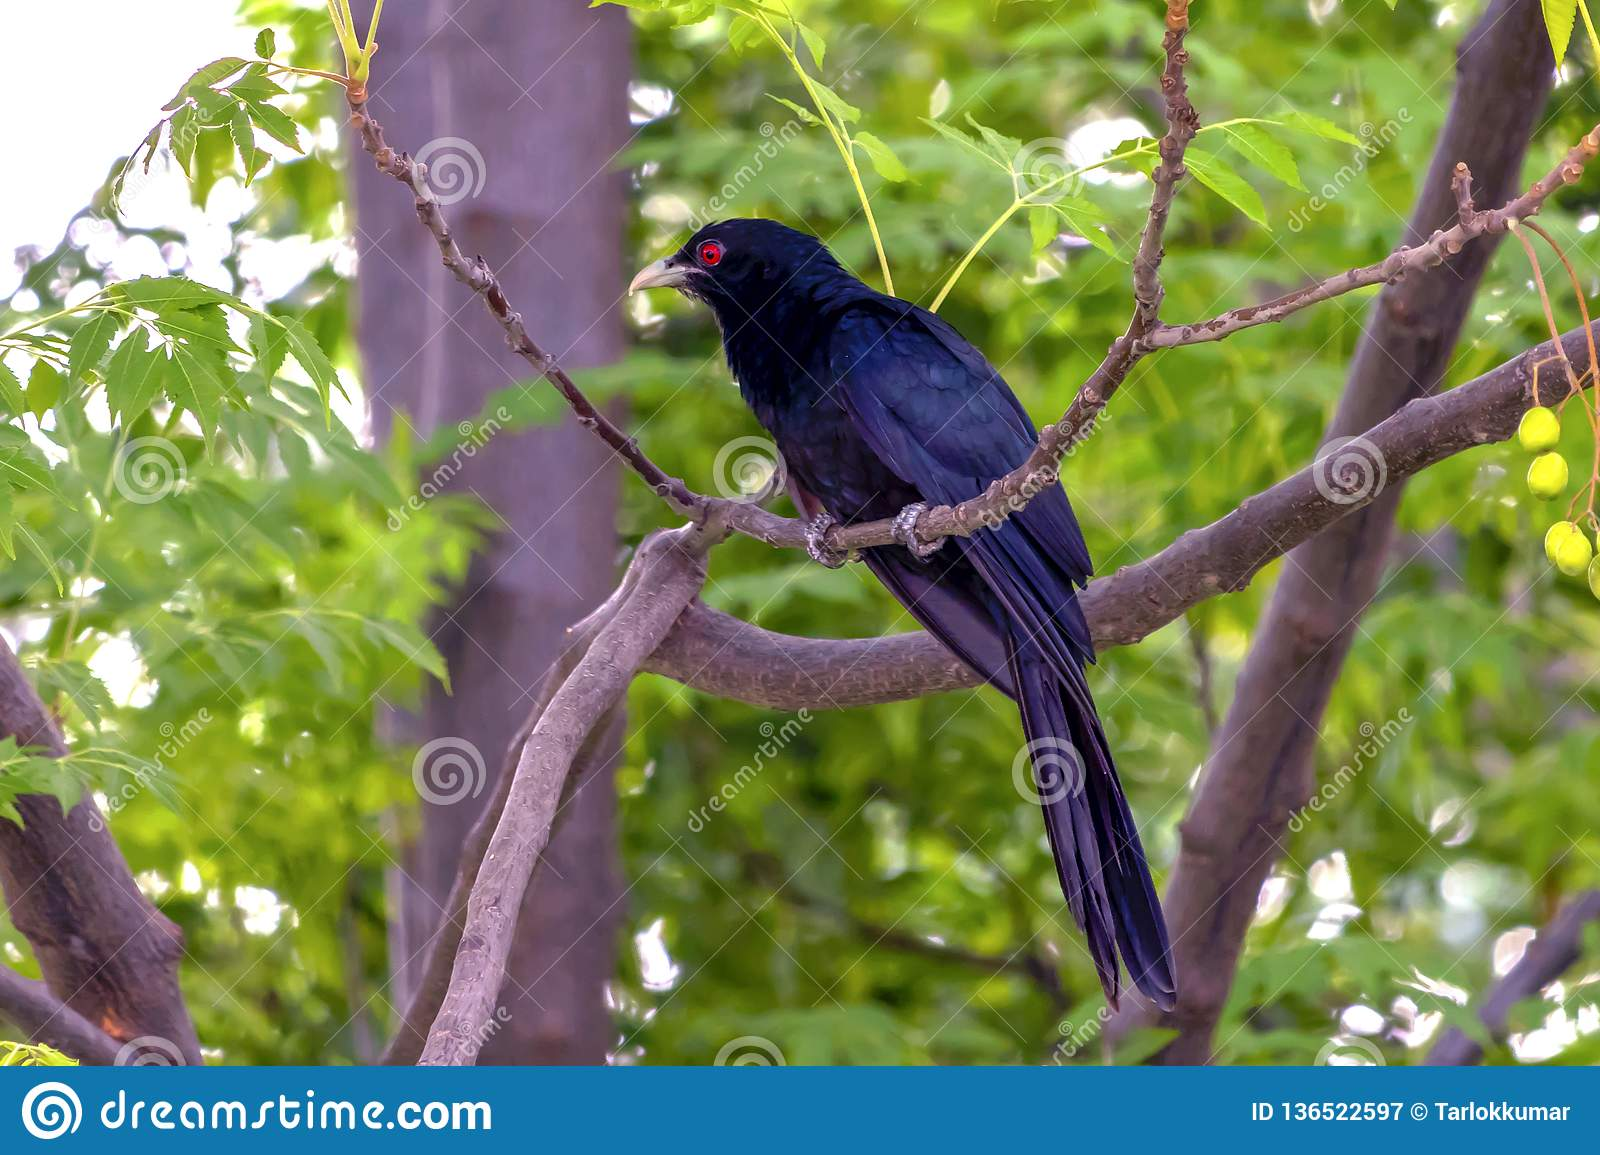 The Asian Koel sitting on a tree branch.